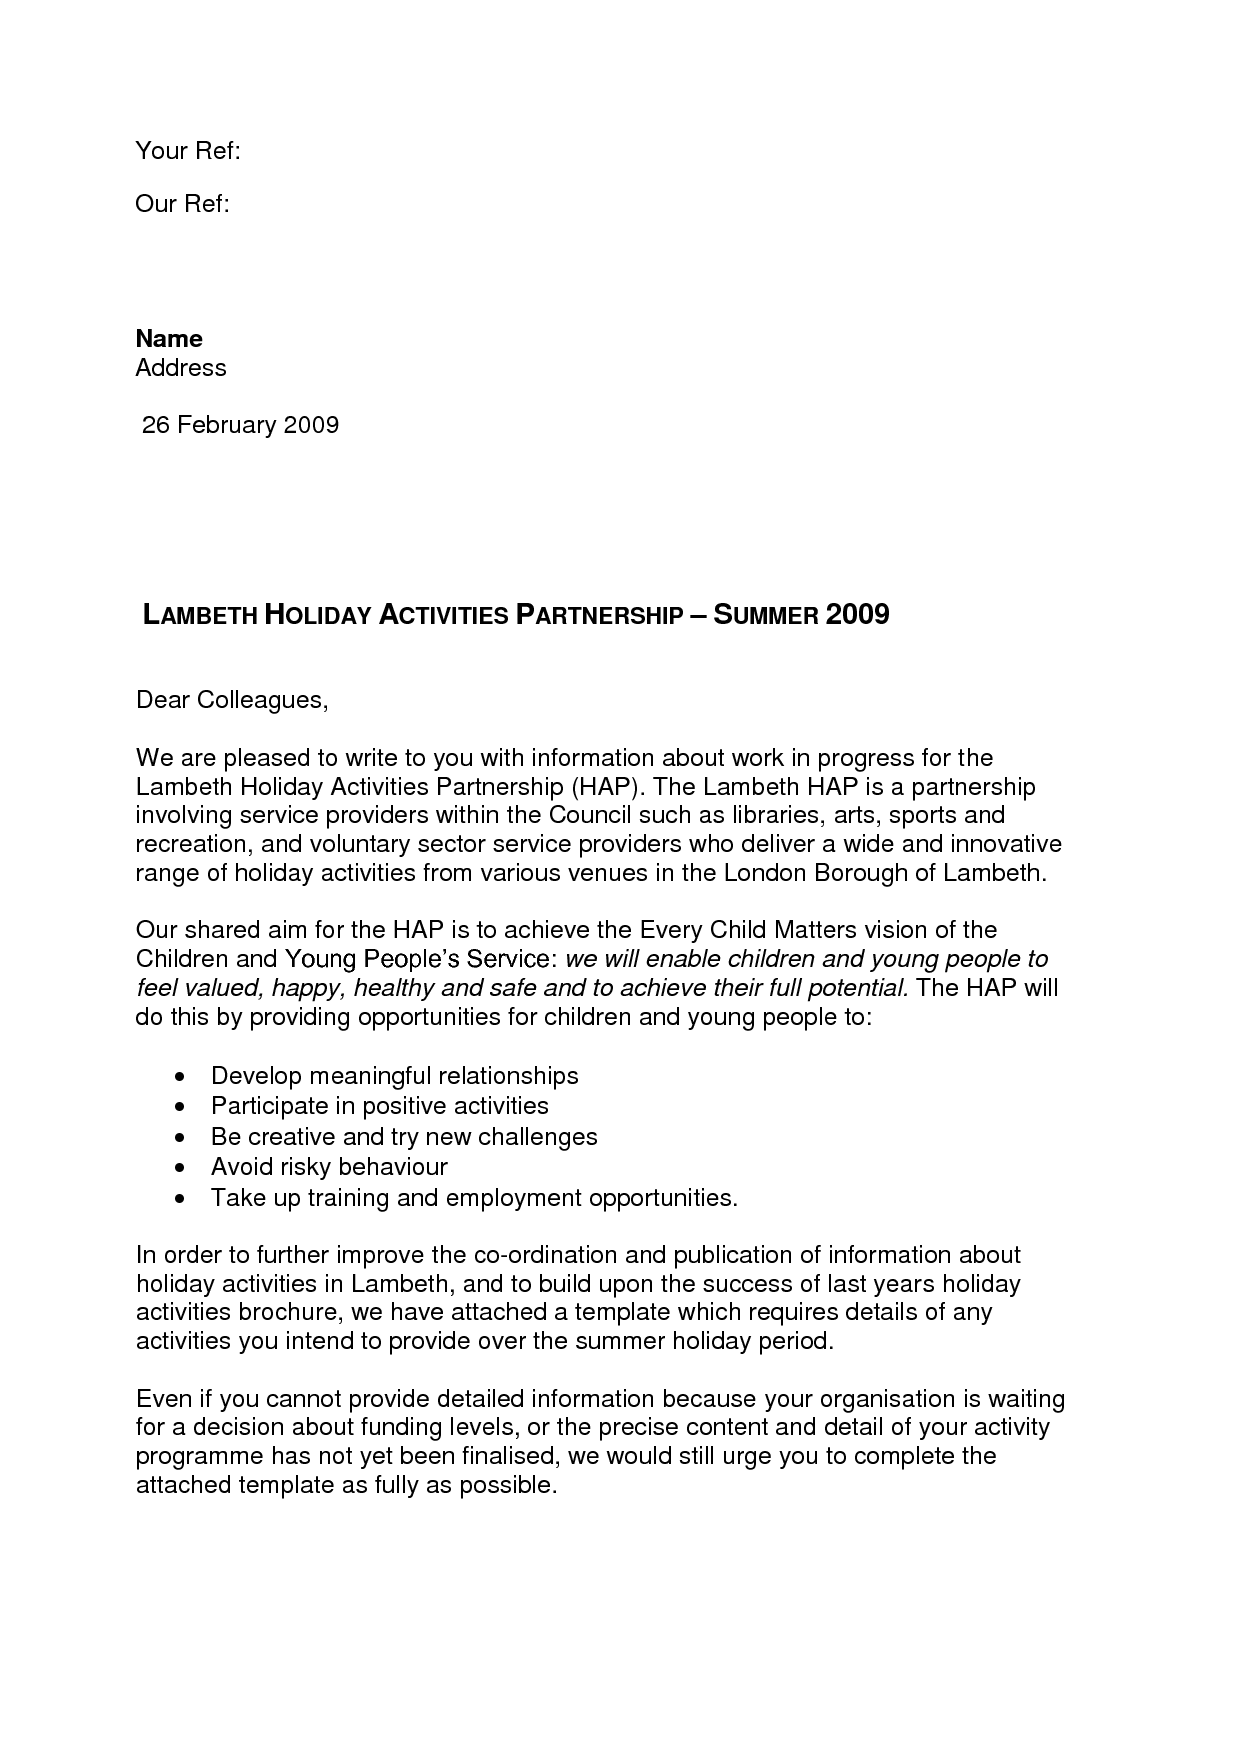 sample resume cover letter in malaysia executiveresumesample com